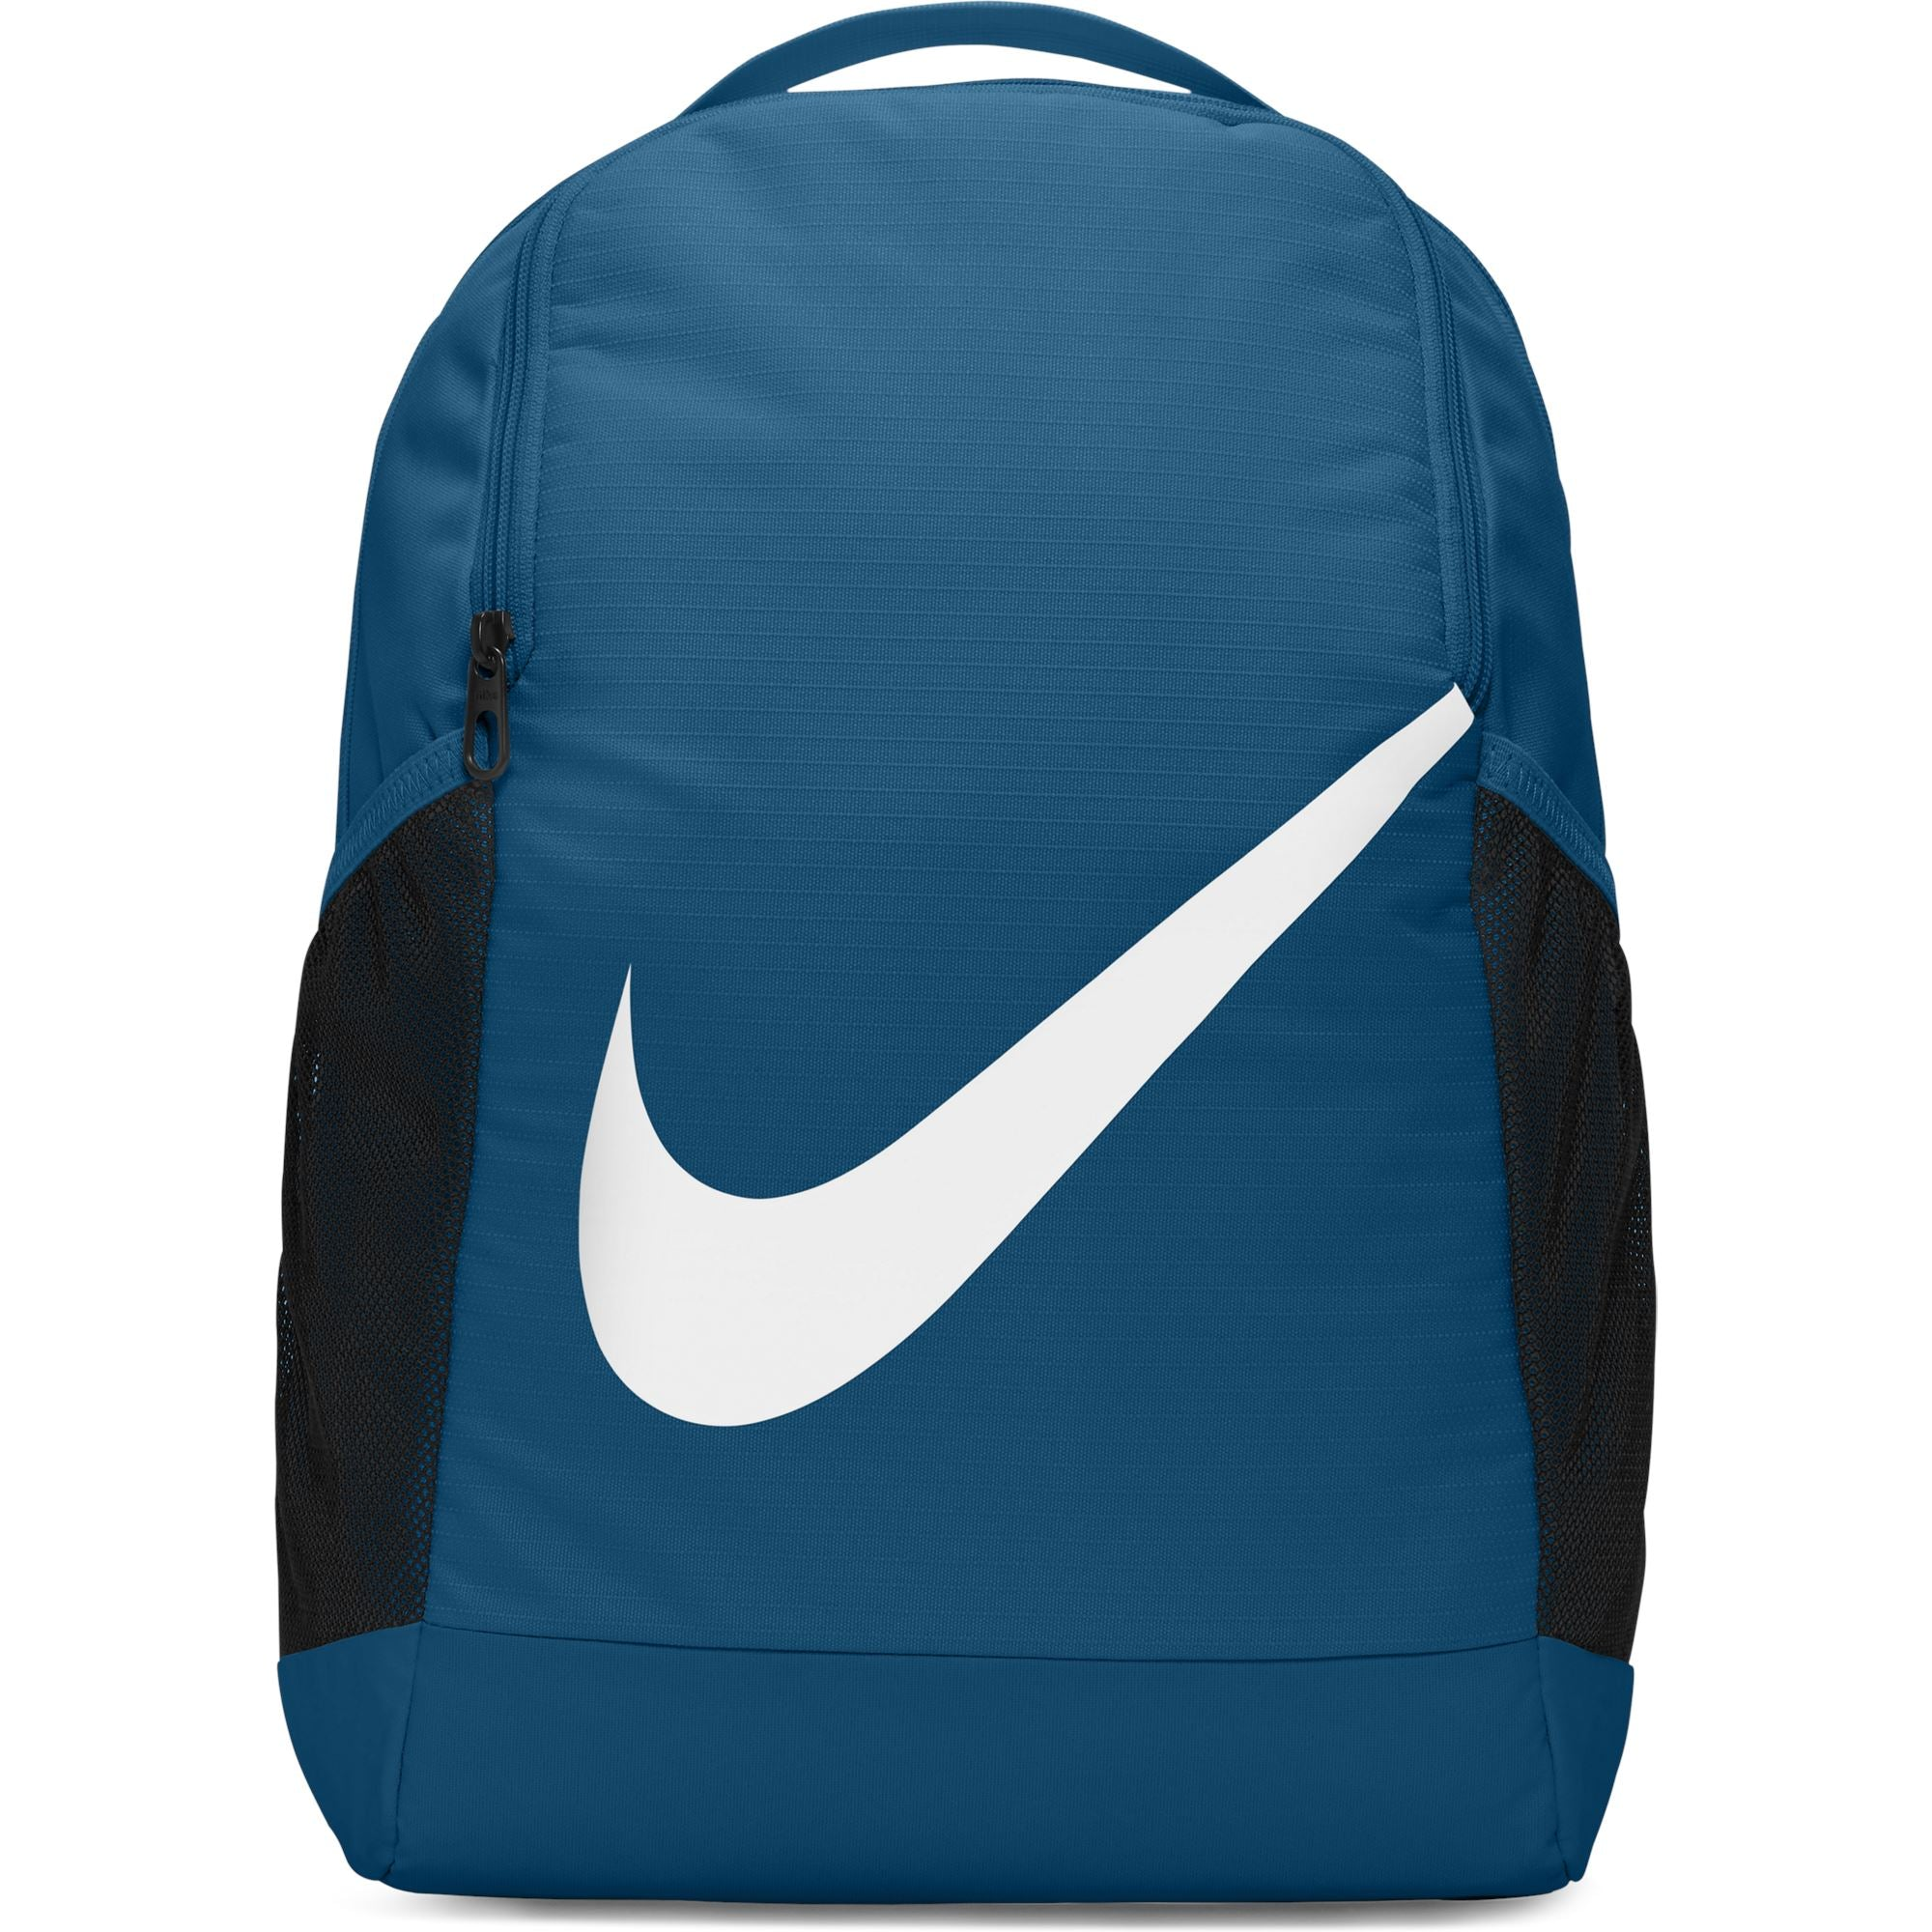 Nike Kids Brasilia Backpack - Green Abyss/White SP-Accessories-Bags Nike